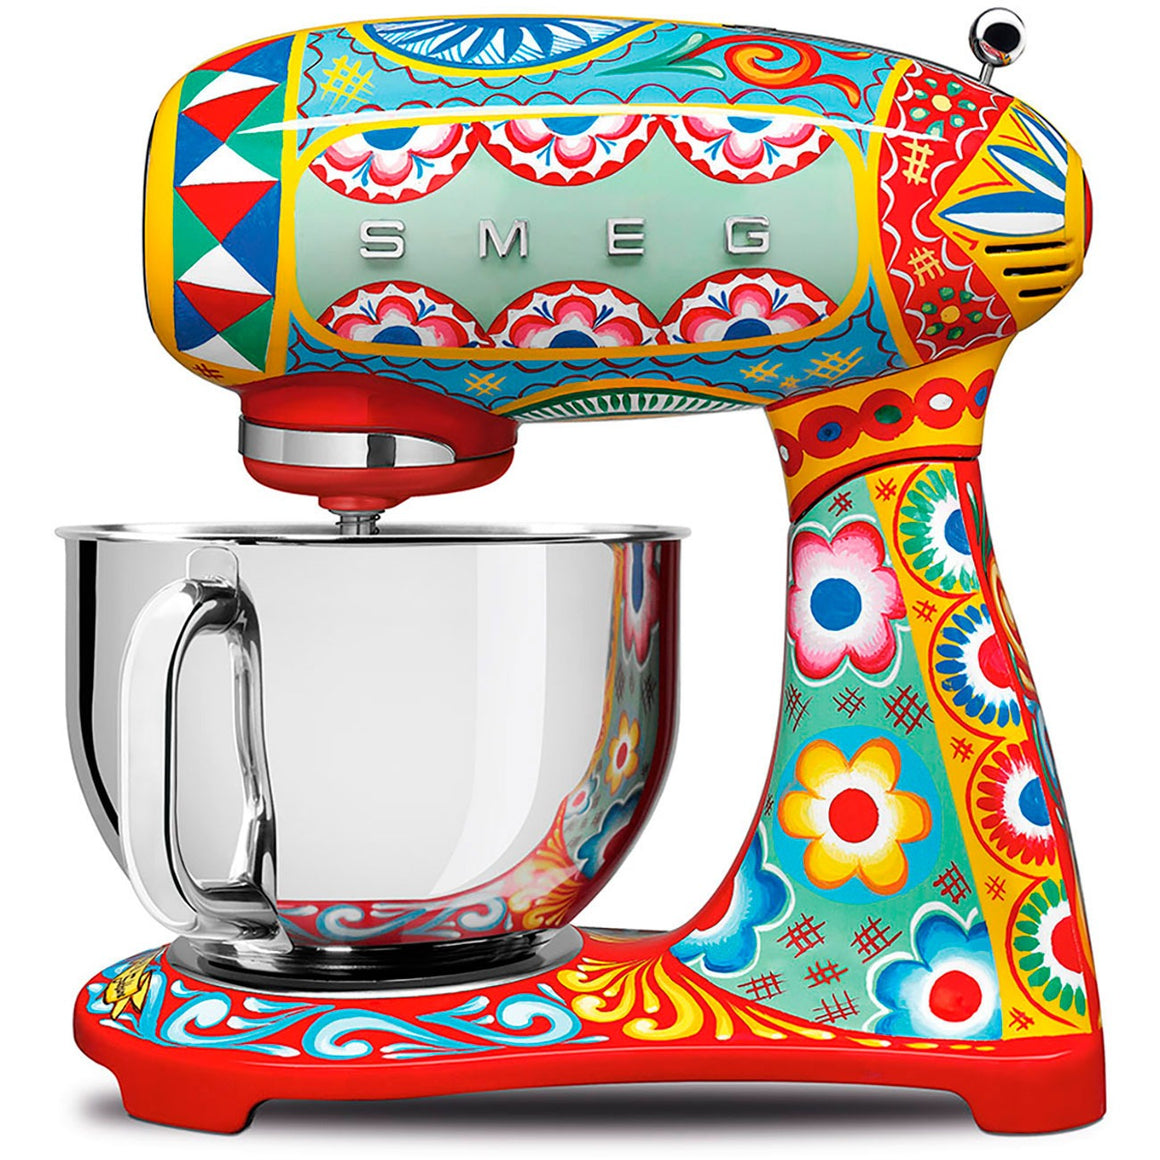 SMEG - 50's Stand Mixer Full Colour, Dolce & Gabbana